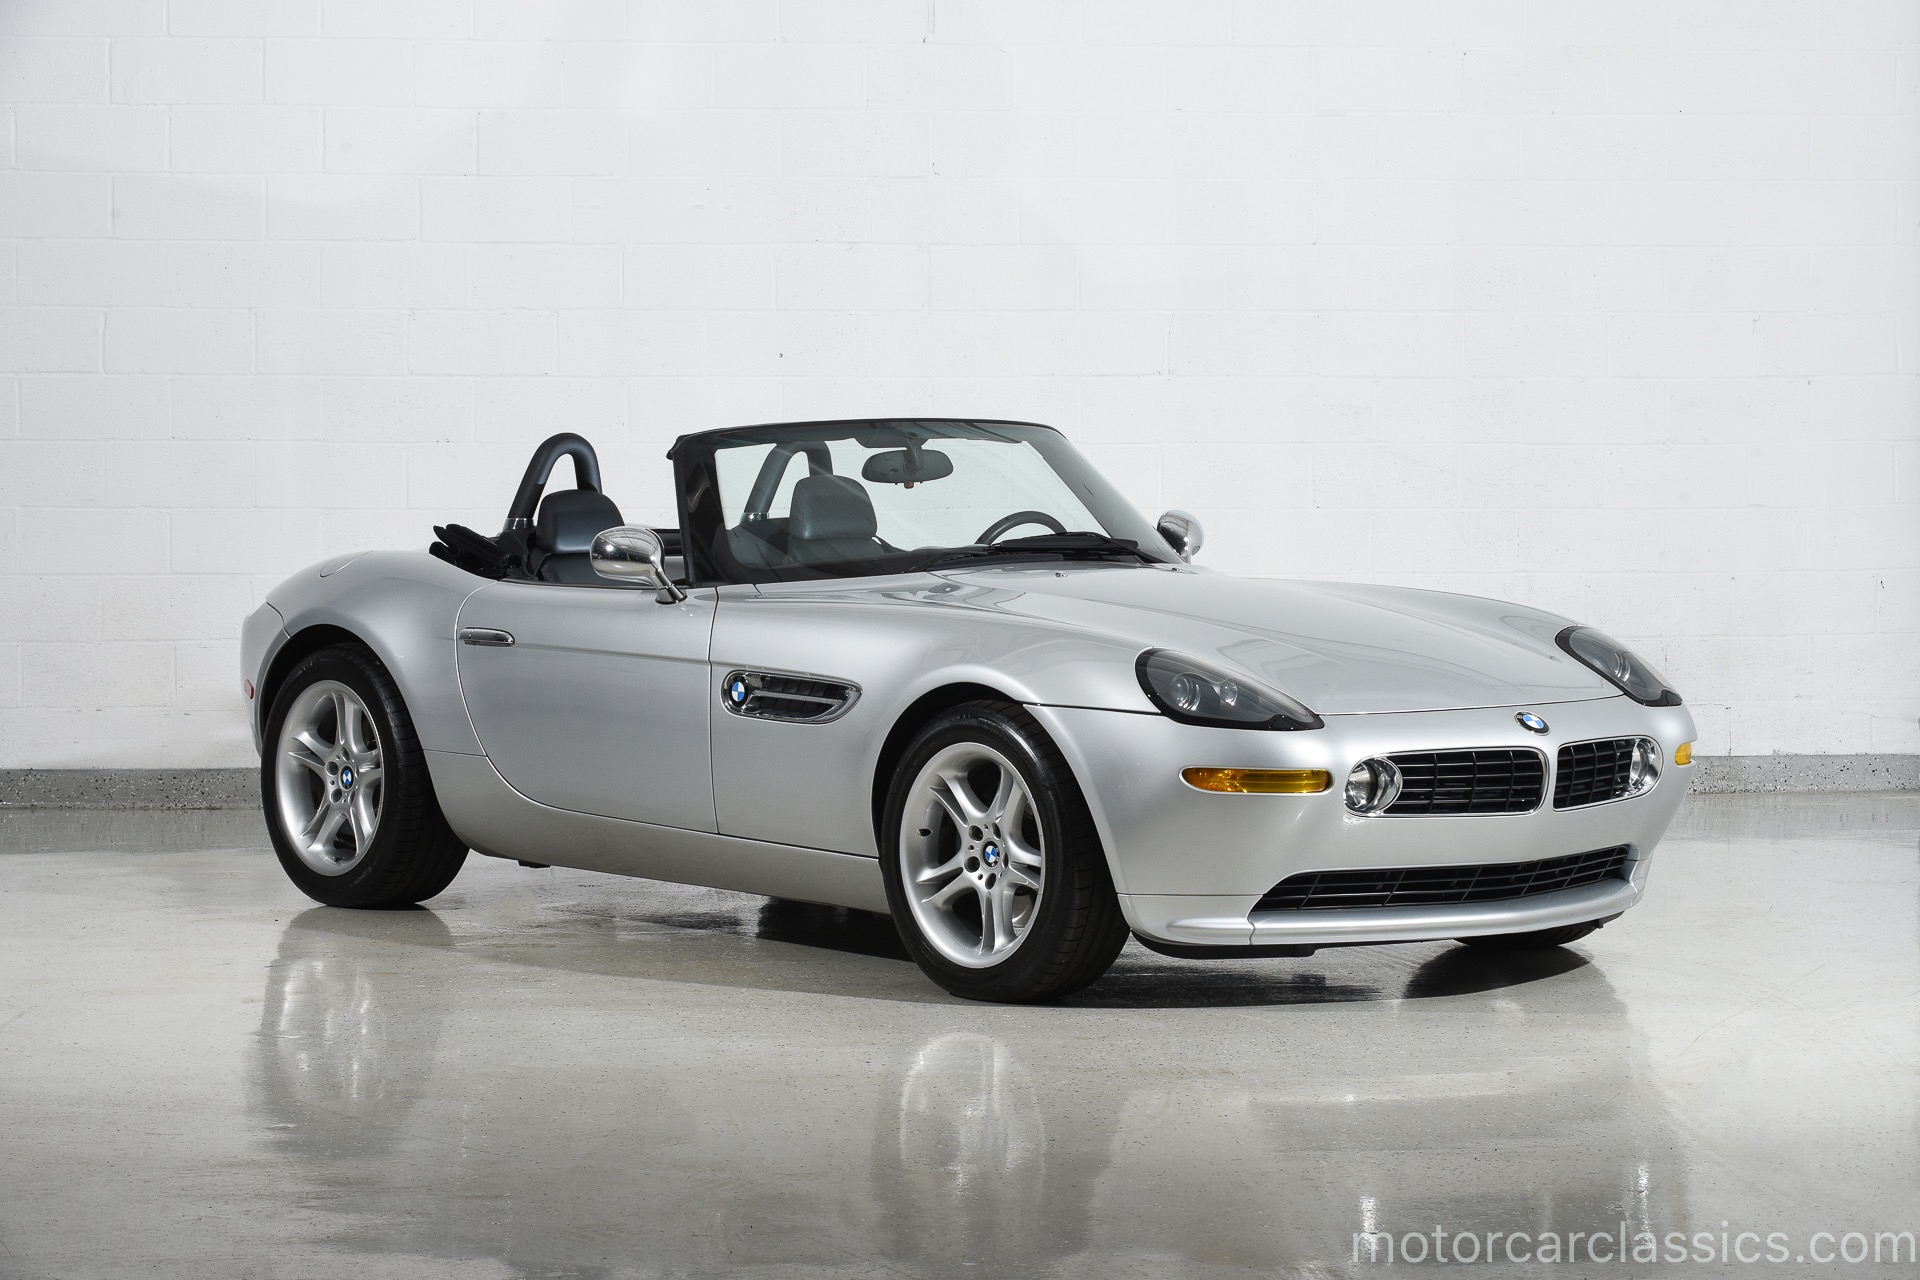 2002 Bmw Z8 Motorcar Classics Exotic And Classic Car Dealership Farmingdale Ny